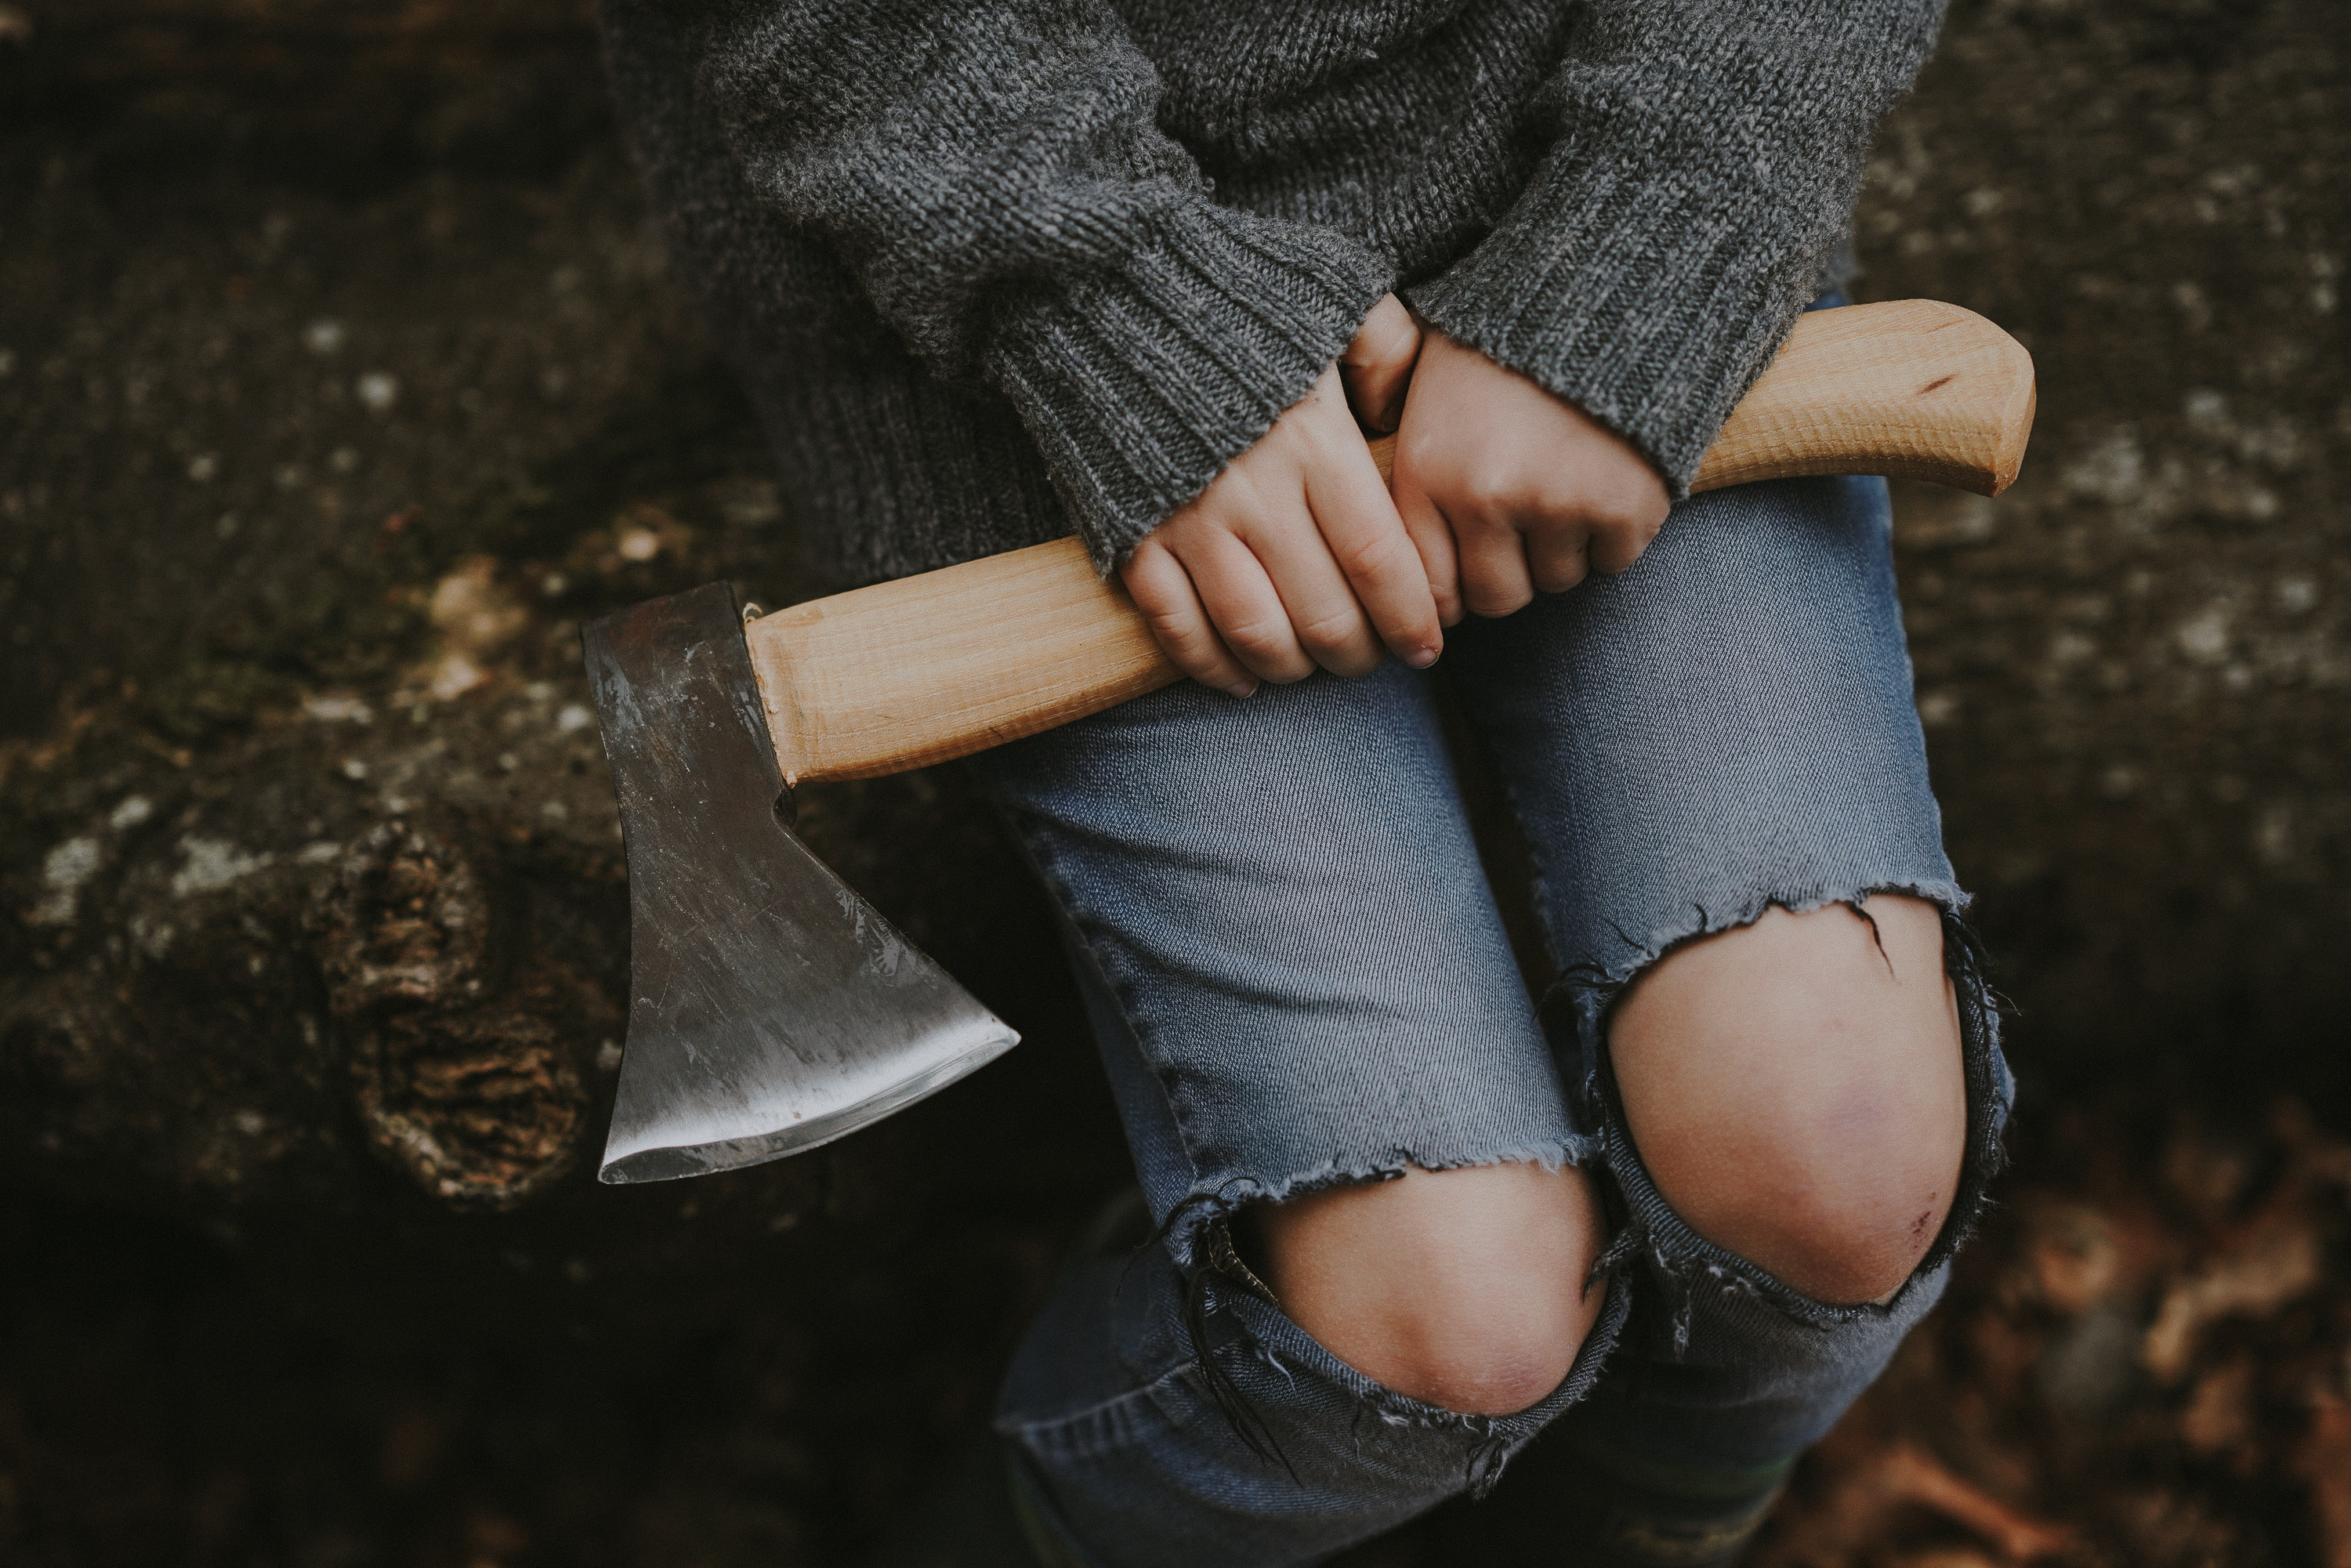 person wears grey knit sweatshirt sitting down while holding brown axe